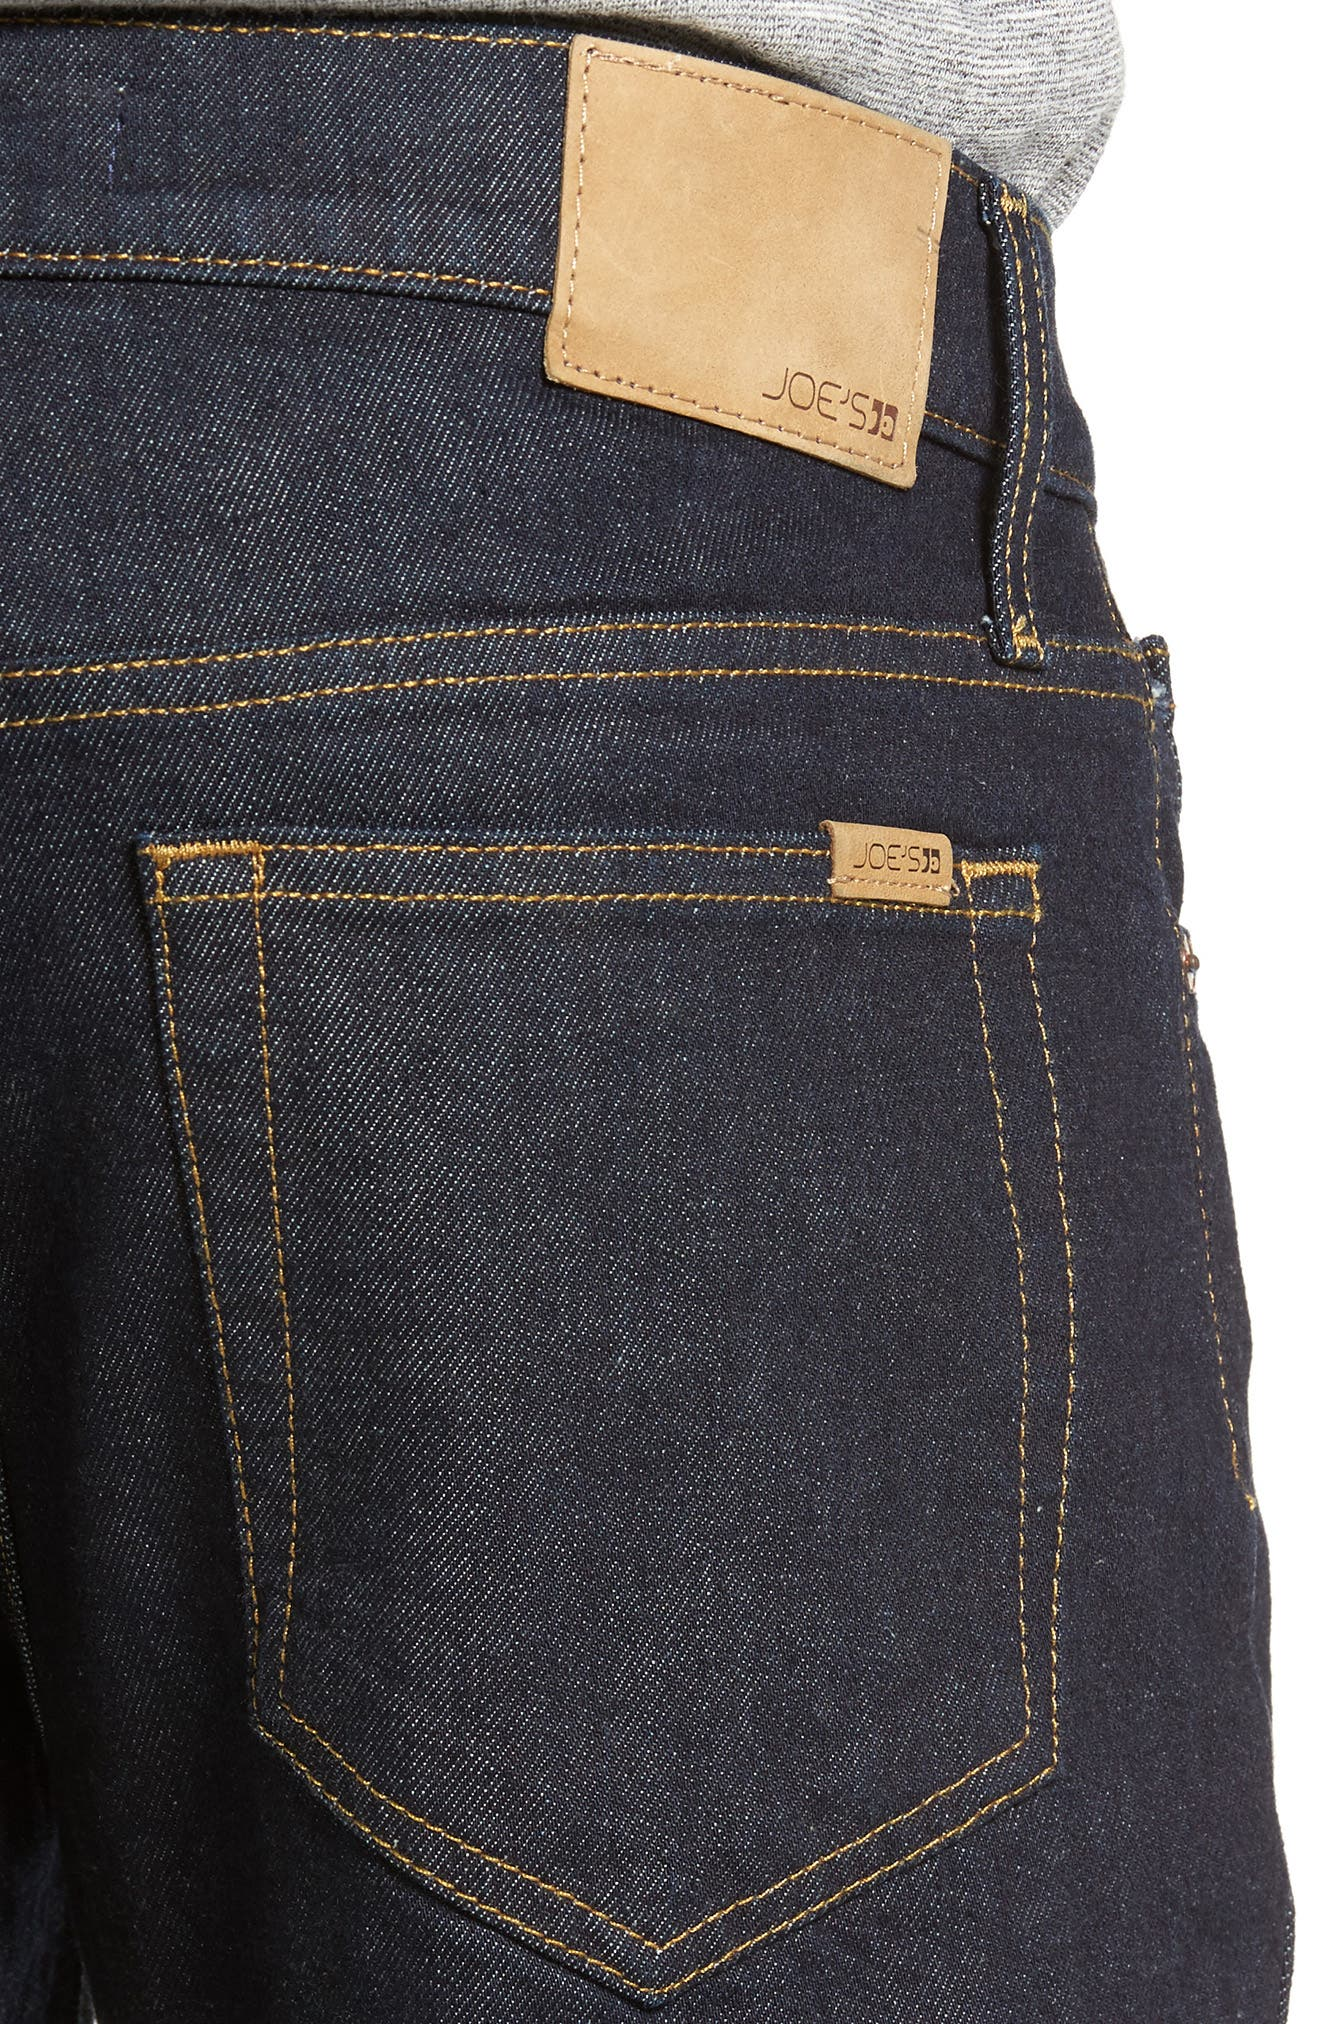 Slim Fit Jeans,                             Alternate thumbnail 3, color,                             Halford